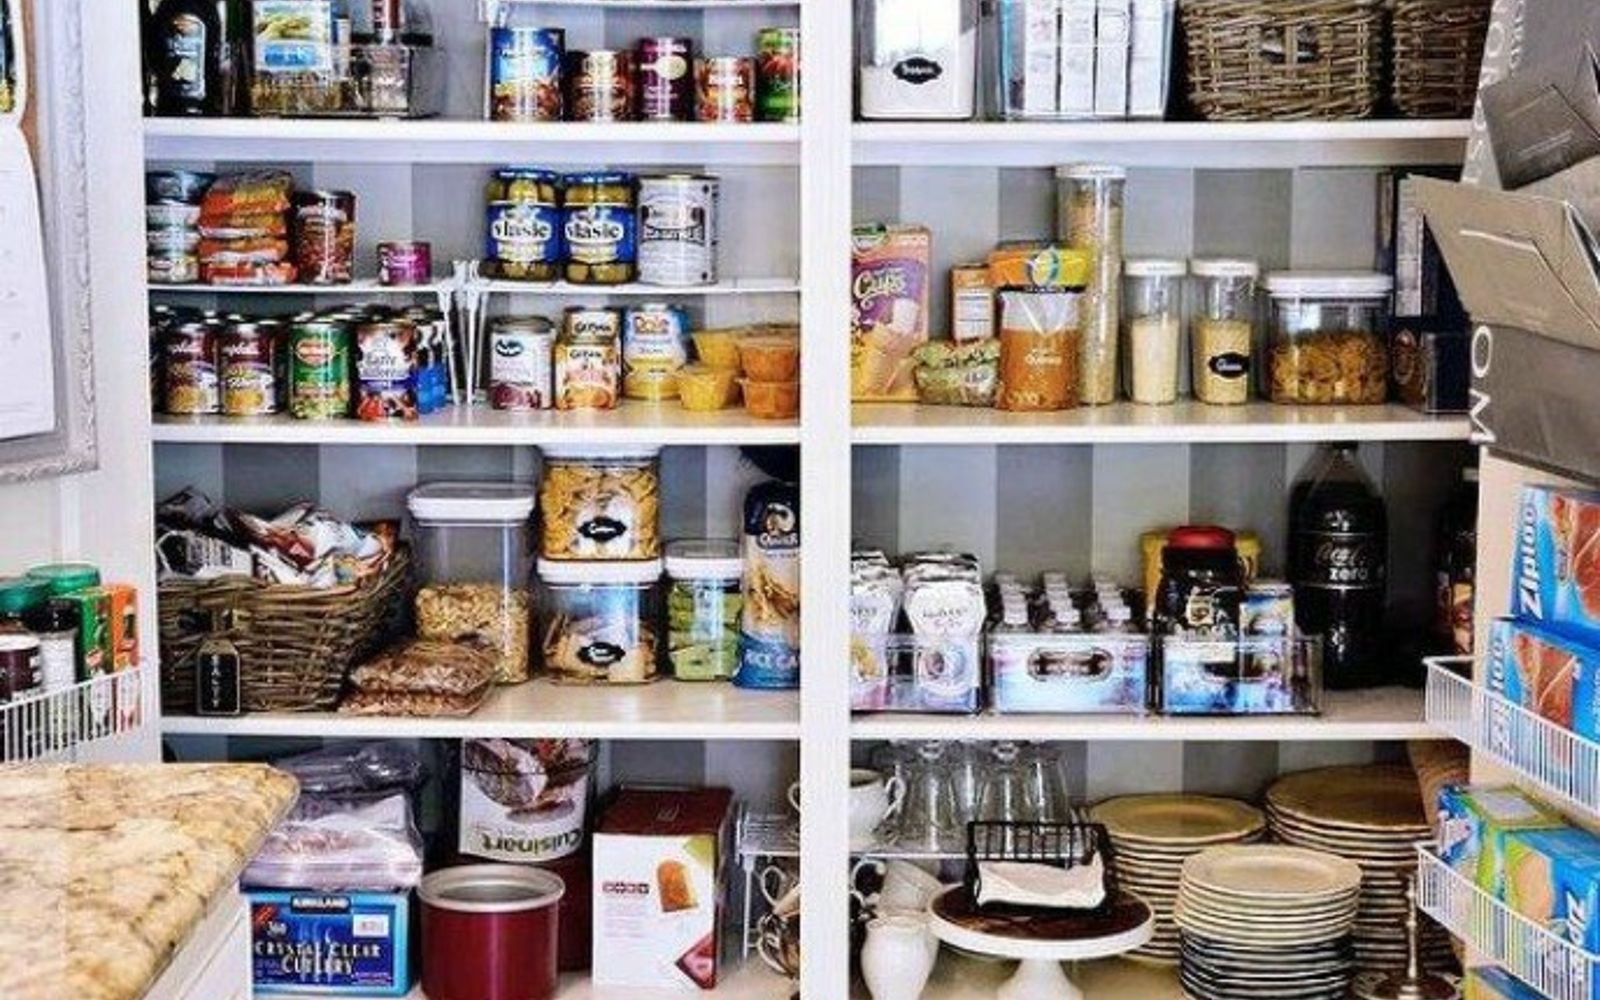 s 20 ways you never thought of using wallpaper, wall decor, Make your pantry look organized